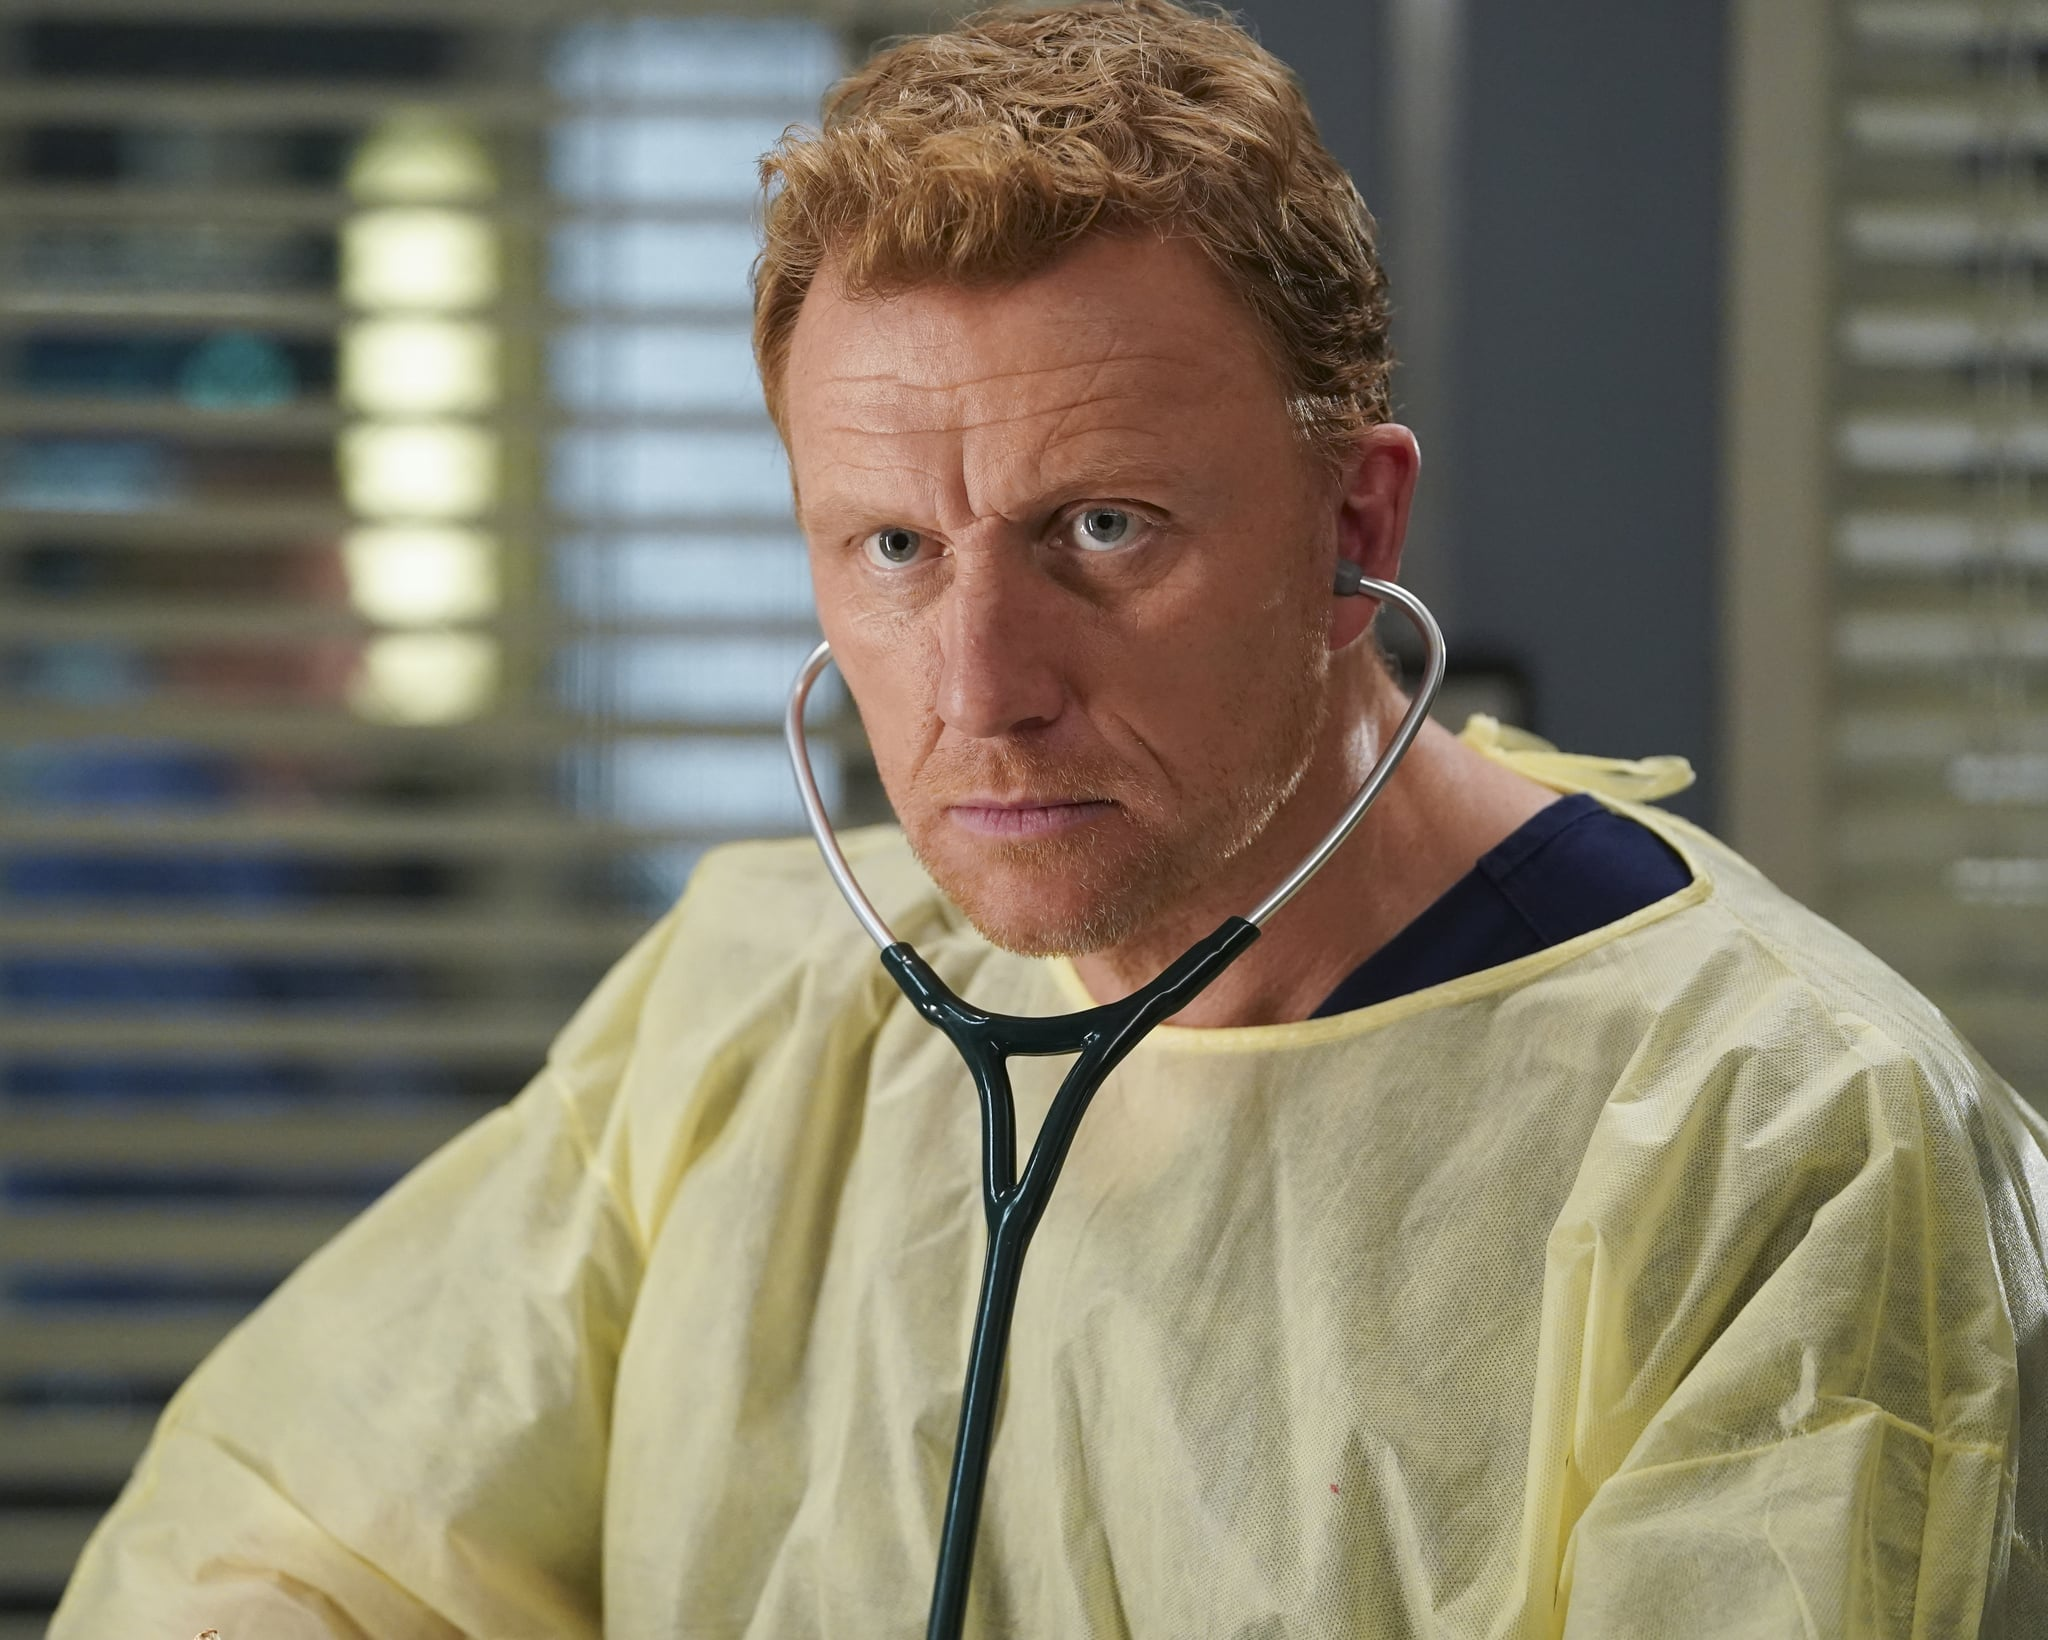 GREYS ANATOMY - Put on a Happy Face  Link tries to convince Amelia to take it easy during the final stage of her pregnancy. Hayes asks Meredith a surprising question, and Owen makes a shocking discovery, on the season finale of Greys Anatomy, THURSDAY, APRIL 9 (9:00-10:01 p.m. EDT), on ABC. (ABC/Gilles Mingasson)KEVIN MCKIDD